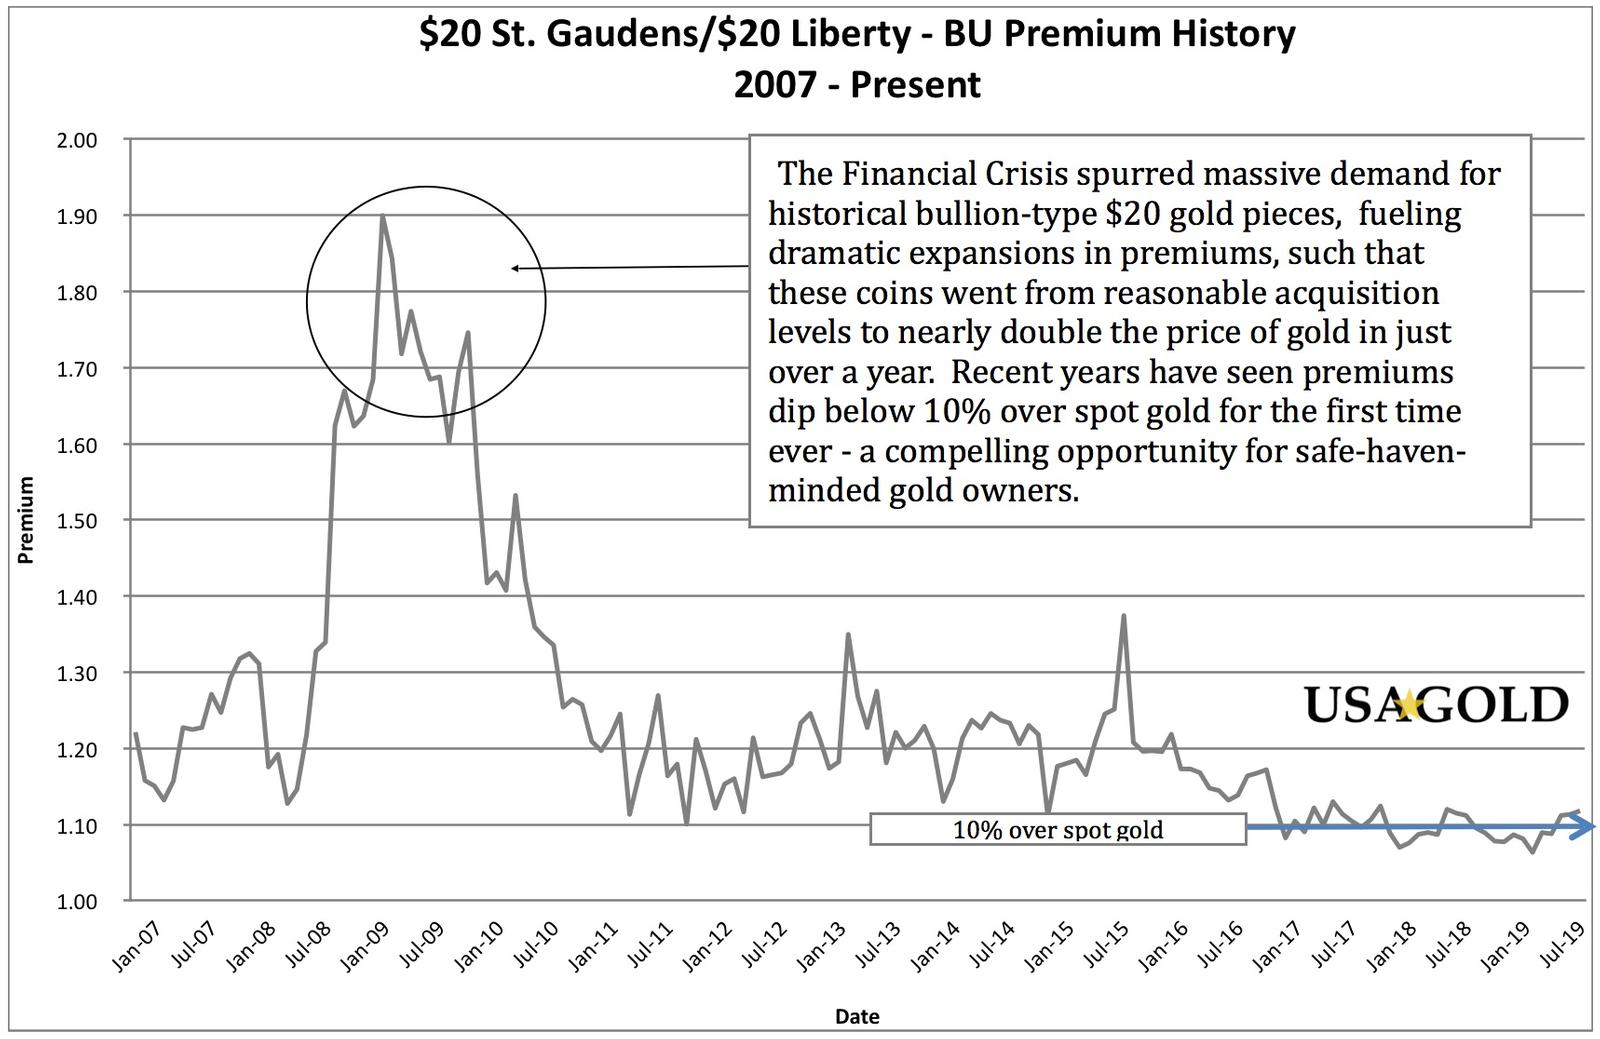 Historical chart of historic U.S. $20 Liberty gold coin values as compared to the price of gold.